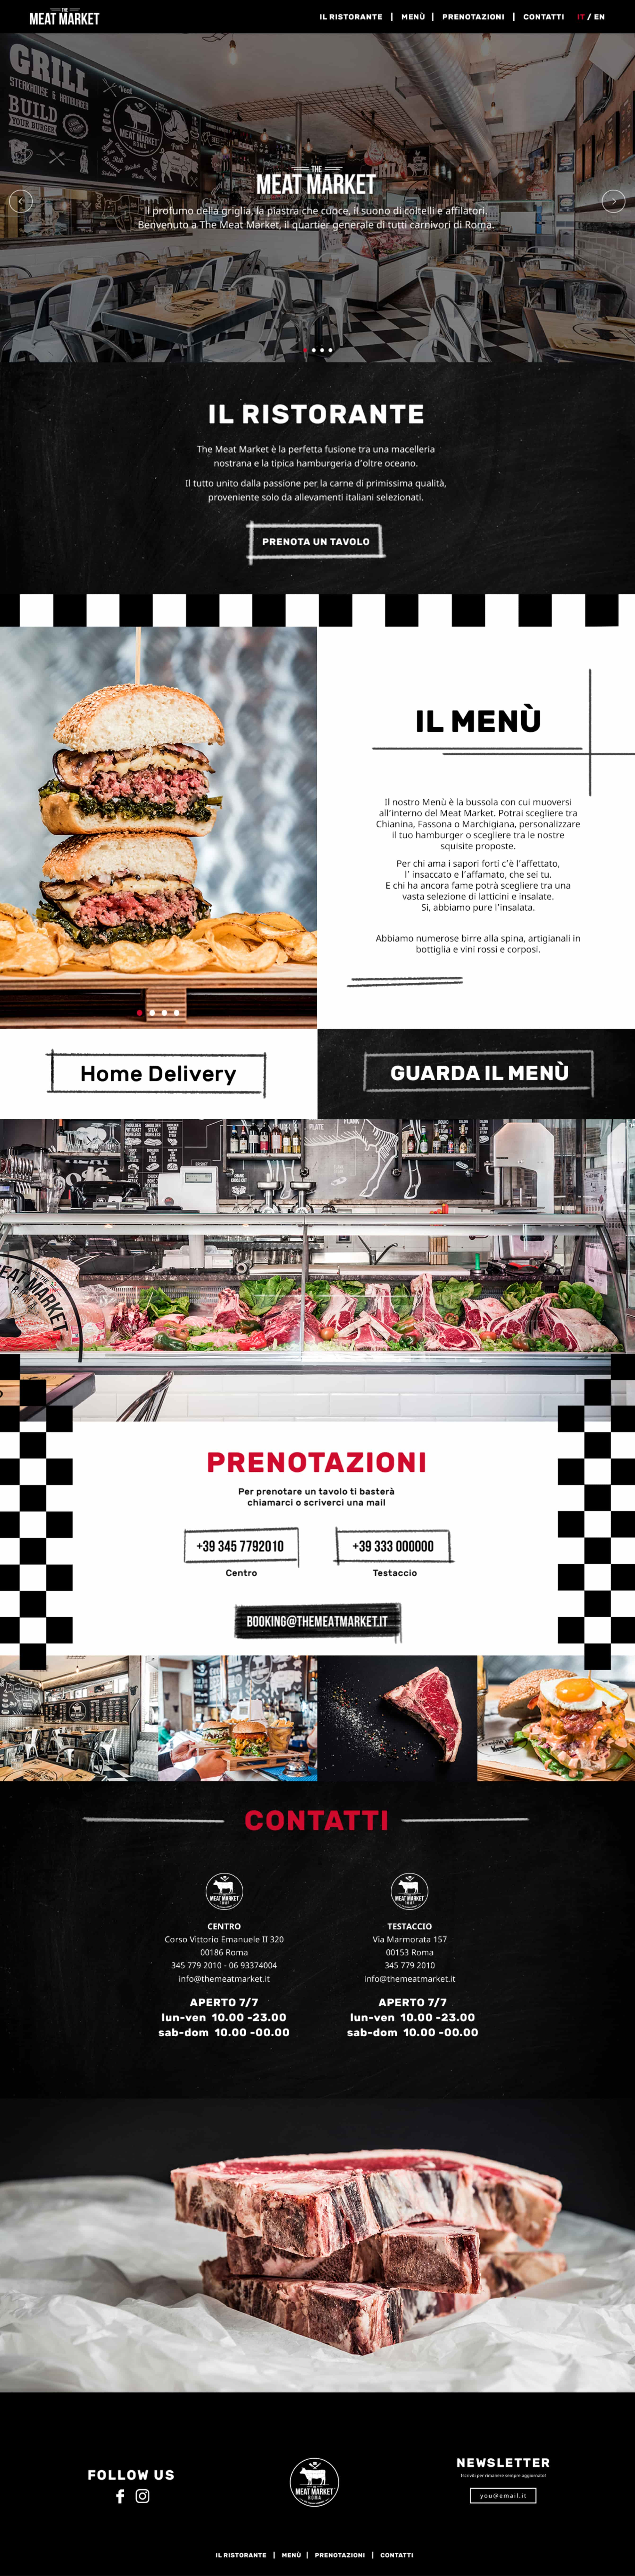 Our creative web agency developed The Meat Market one page scrolling website